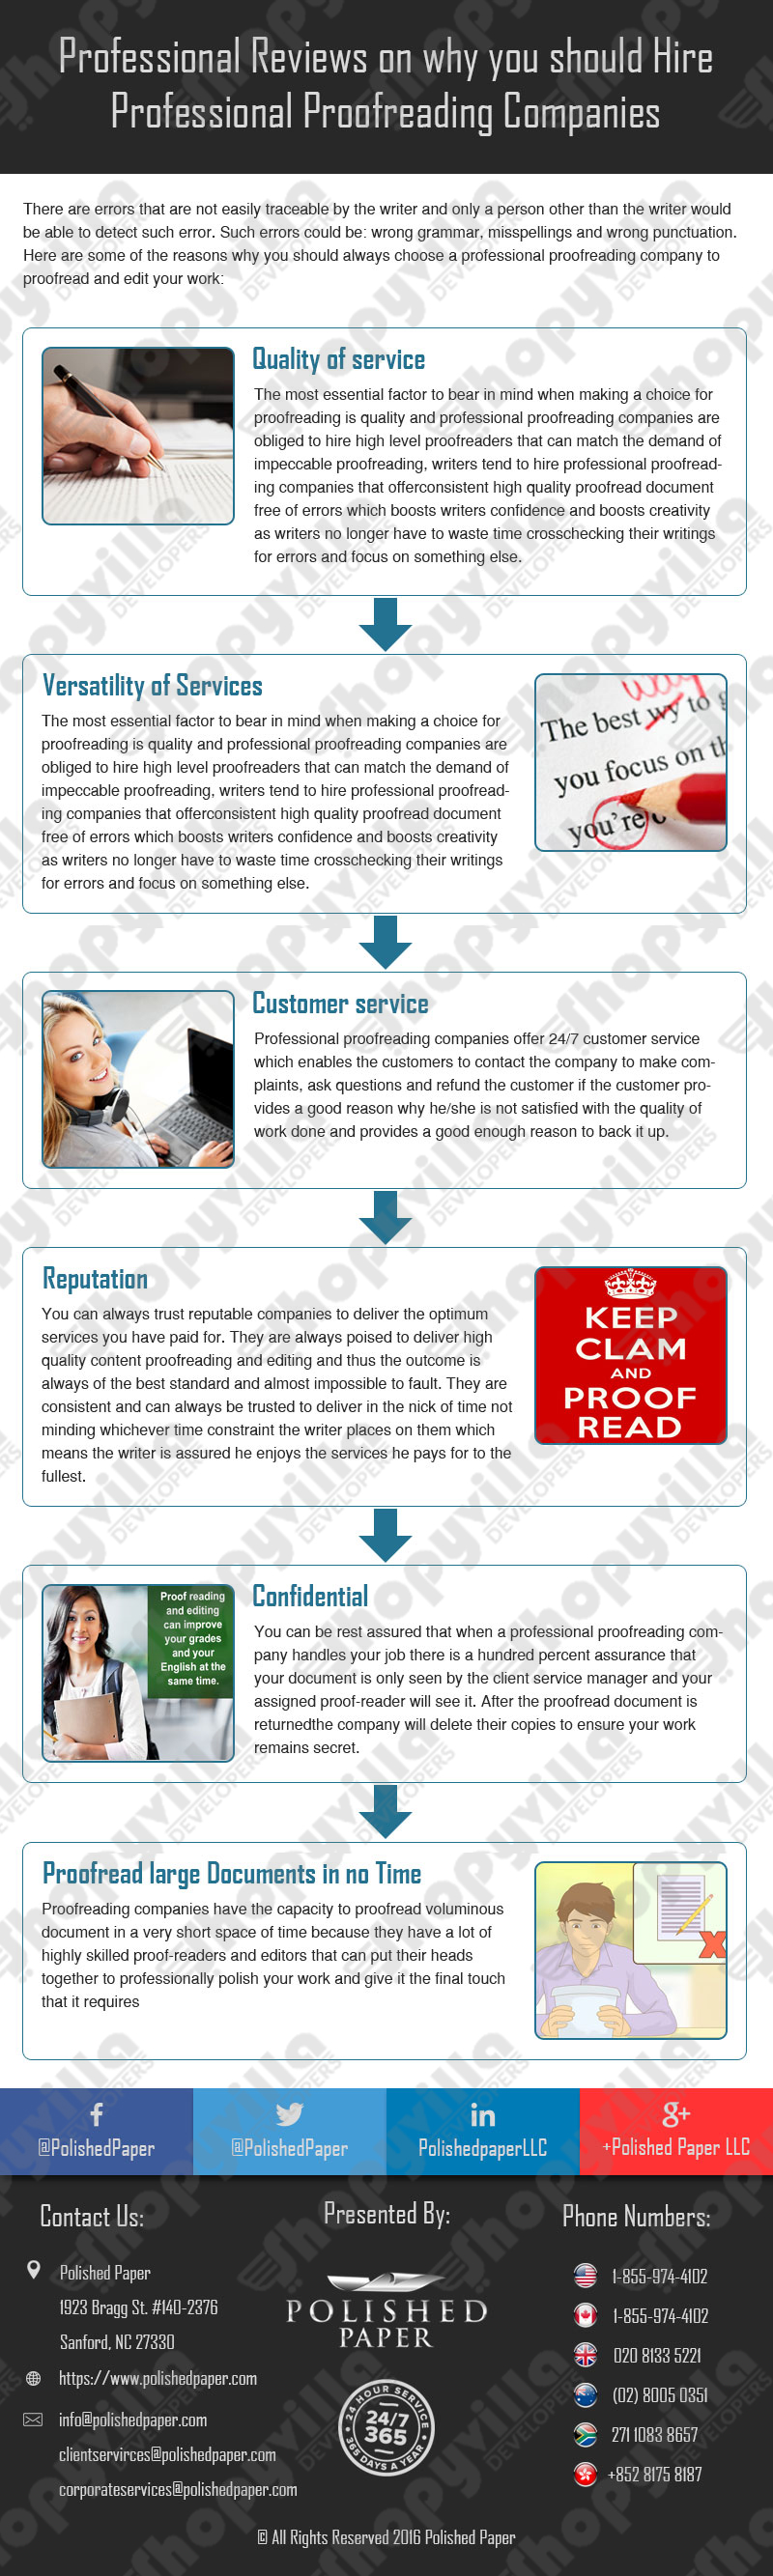 proofreading-infographic-small-shopyvilla-developers